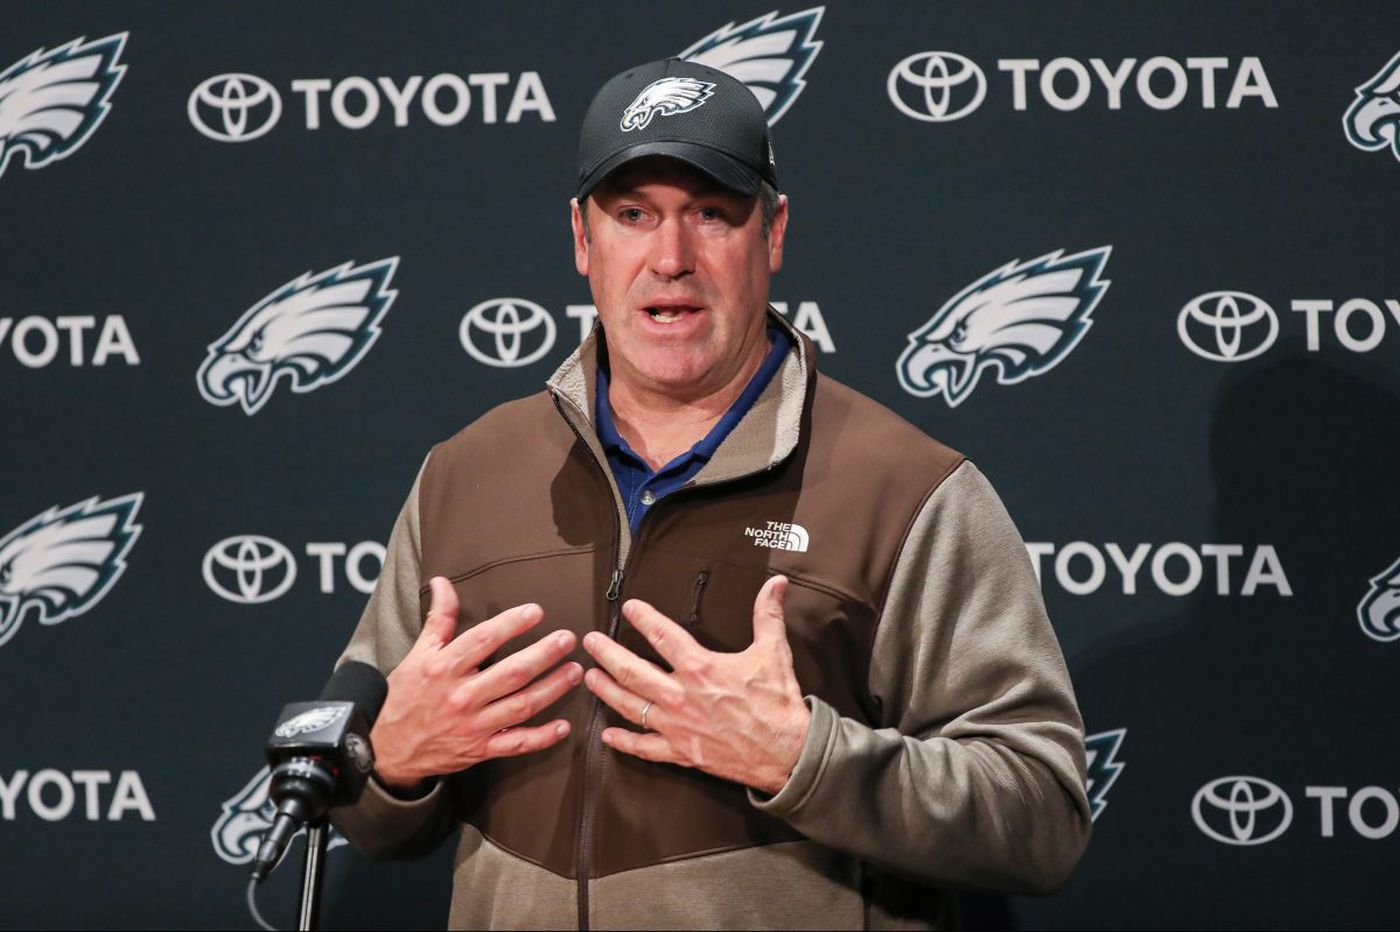 The Doug Pederson hire: Who's laughing now? | Marcus Hayes